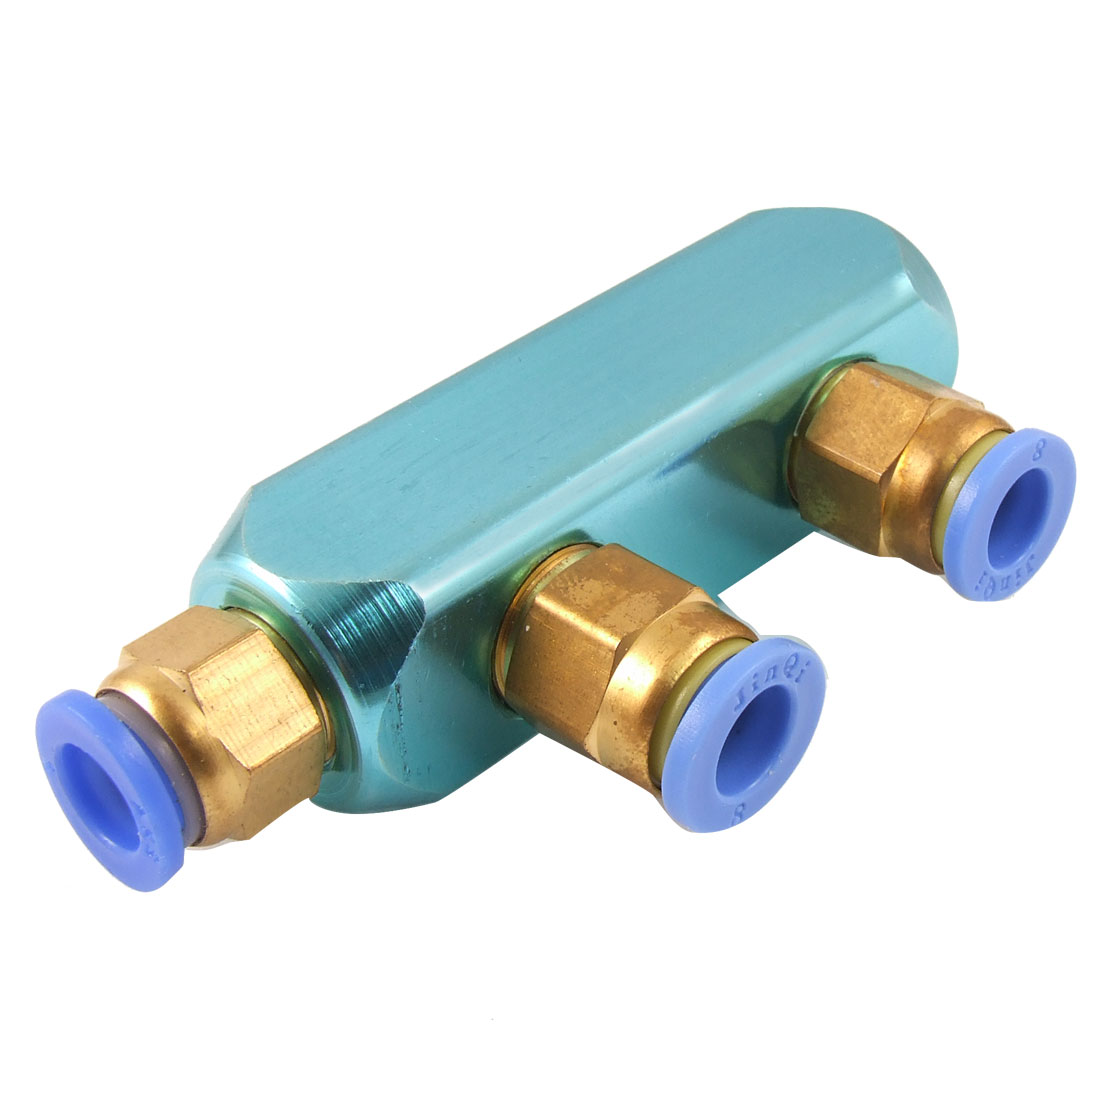 UXCELL 8Mm Pneumatic Air Hose Piping 3 Way One Touch Fittings Quick Coupler l duchen d 721 46 33 page 2